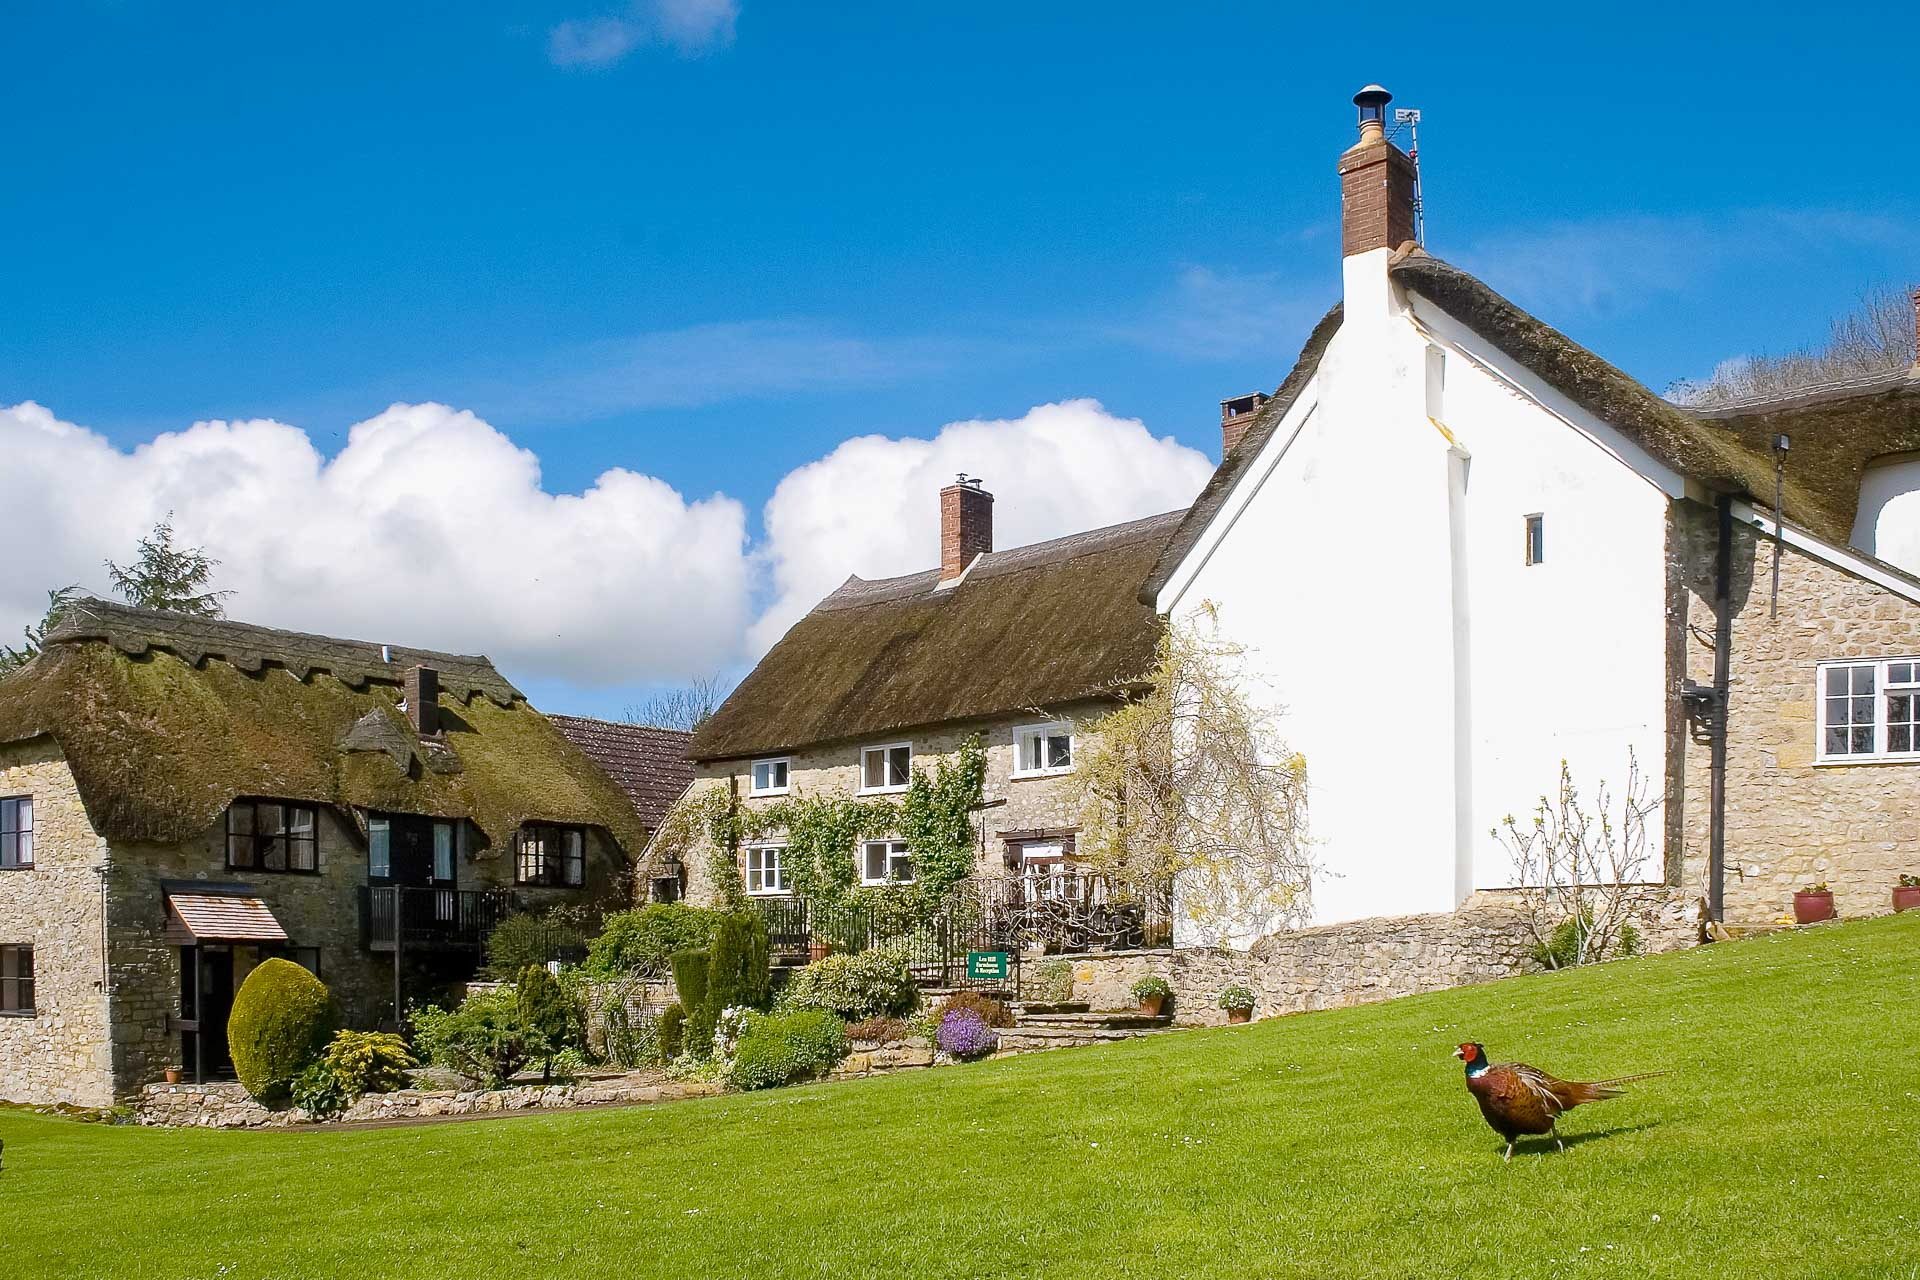 Lea Hill Cottages, group of 4 cottages within the Blackdown Hills near Membury in East Devon